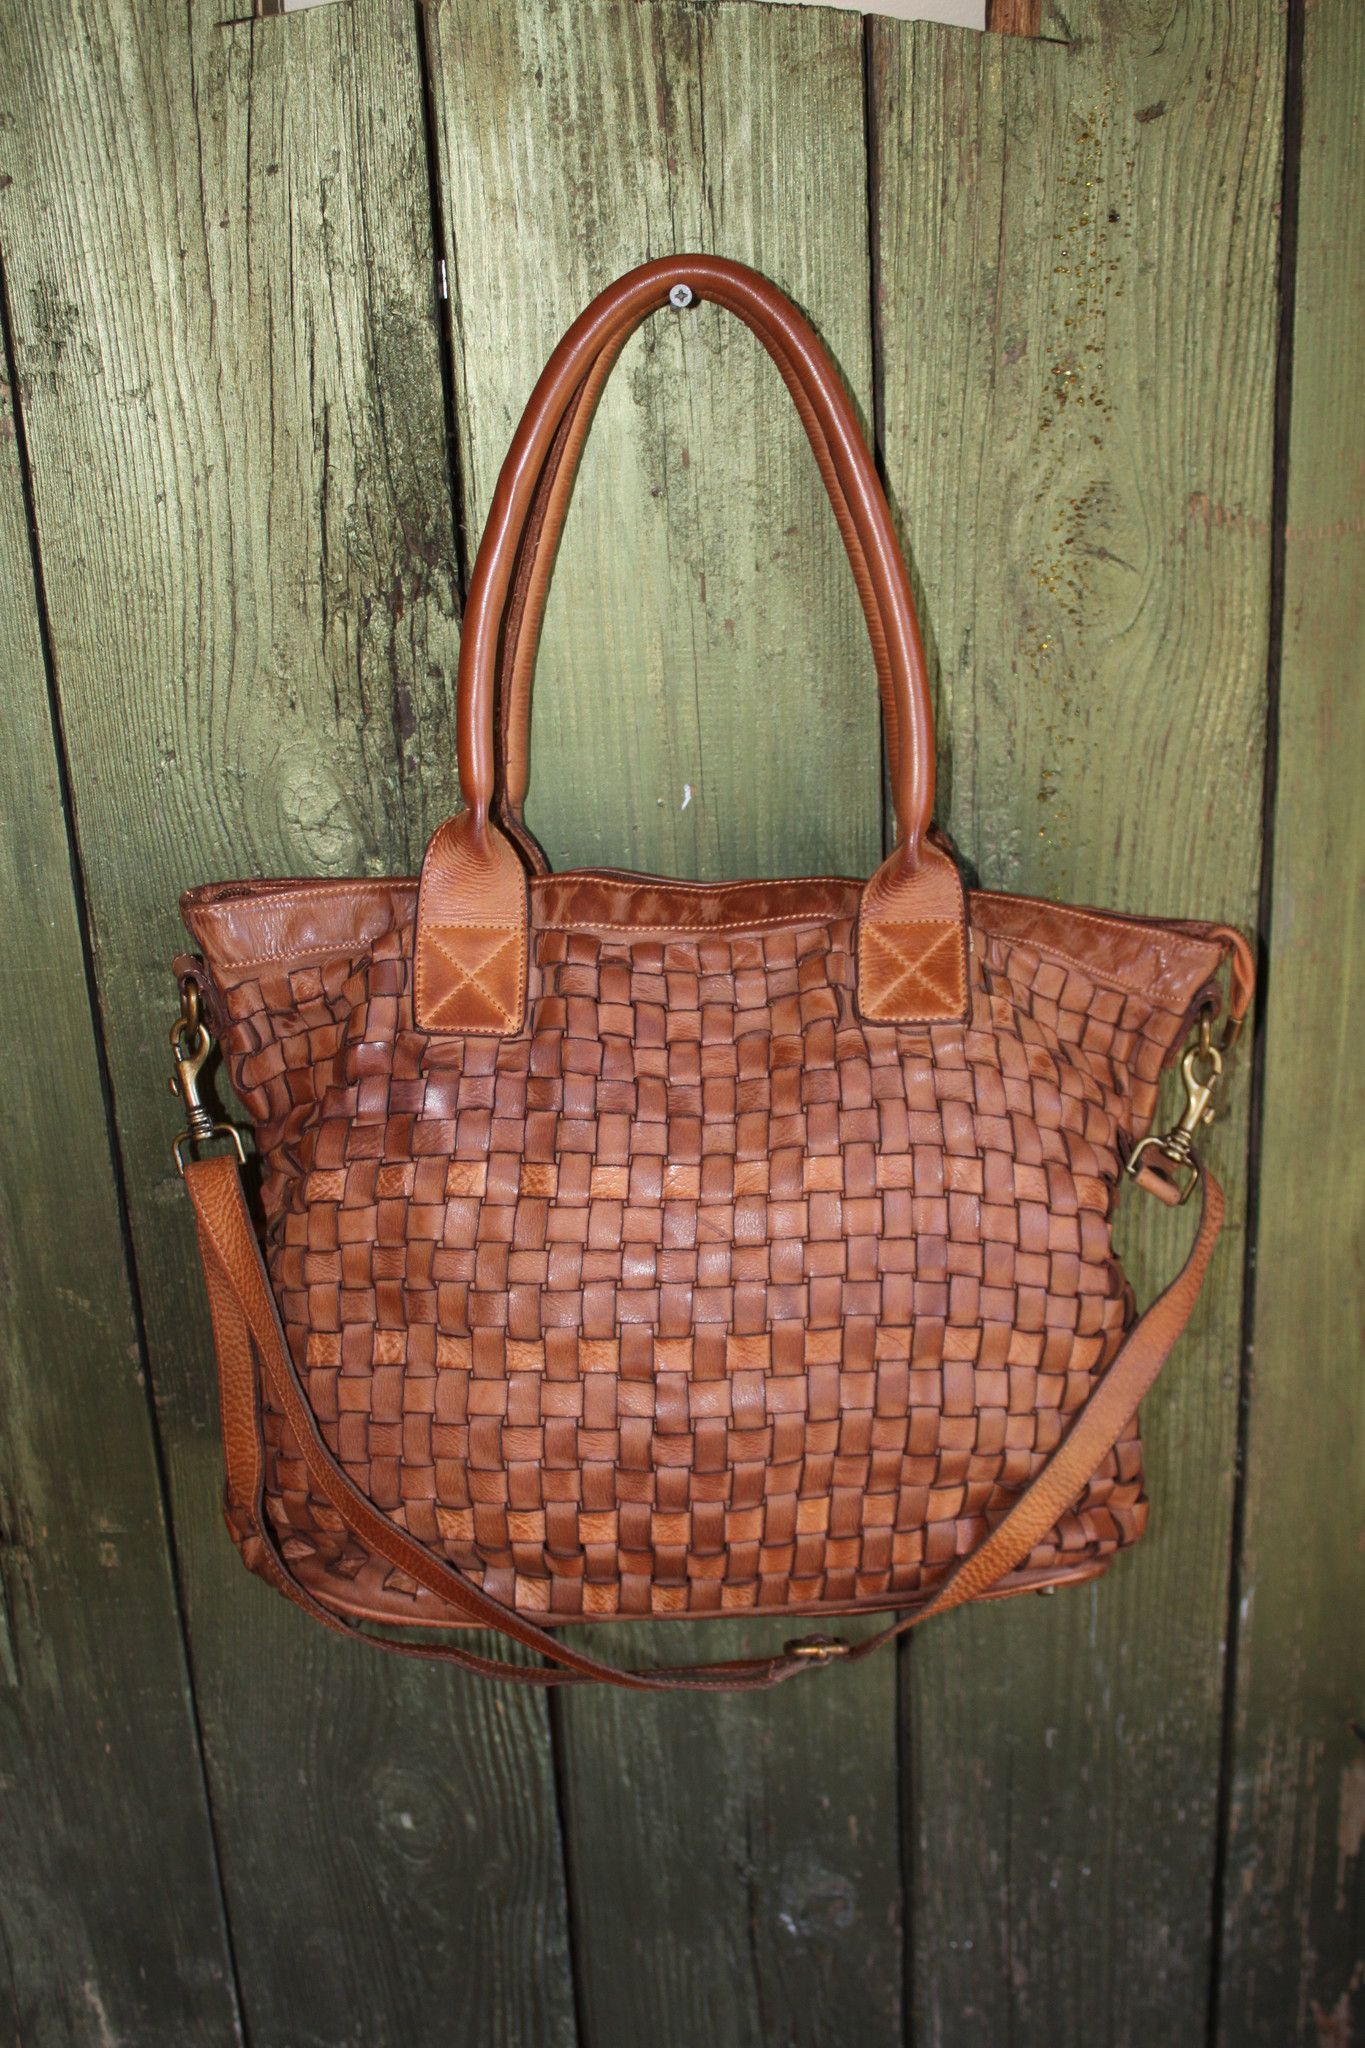 Italian Woven Leather Handmade Purse Tote Handbag Soft Bag Distressed